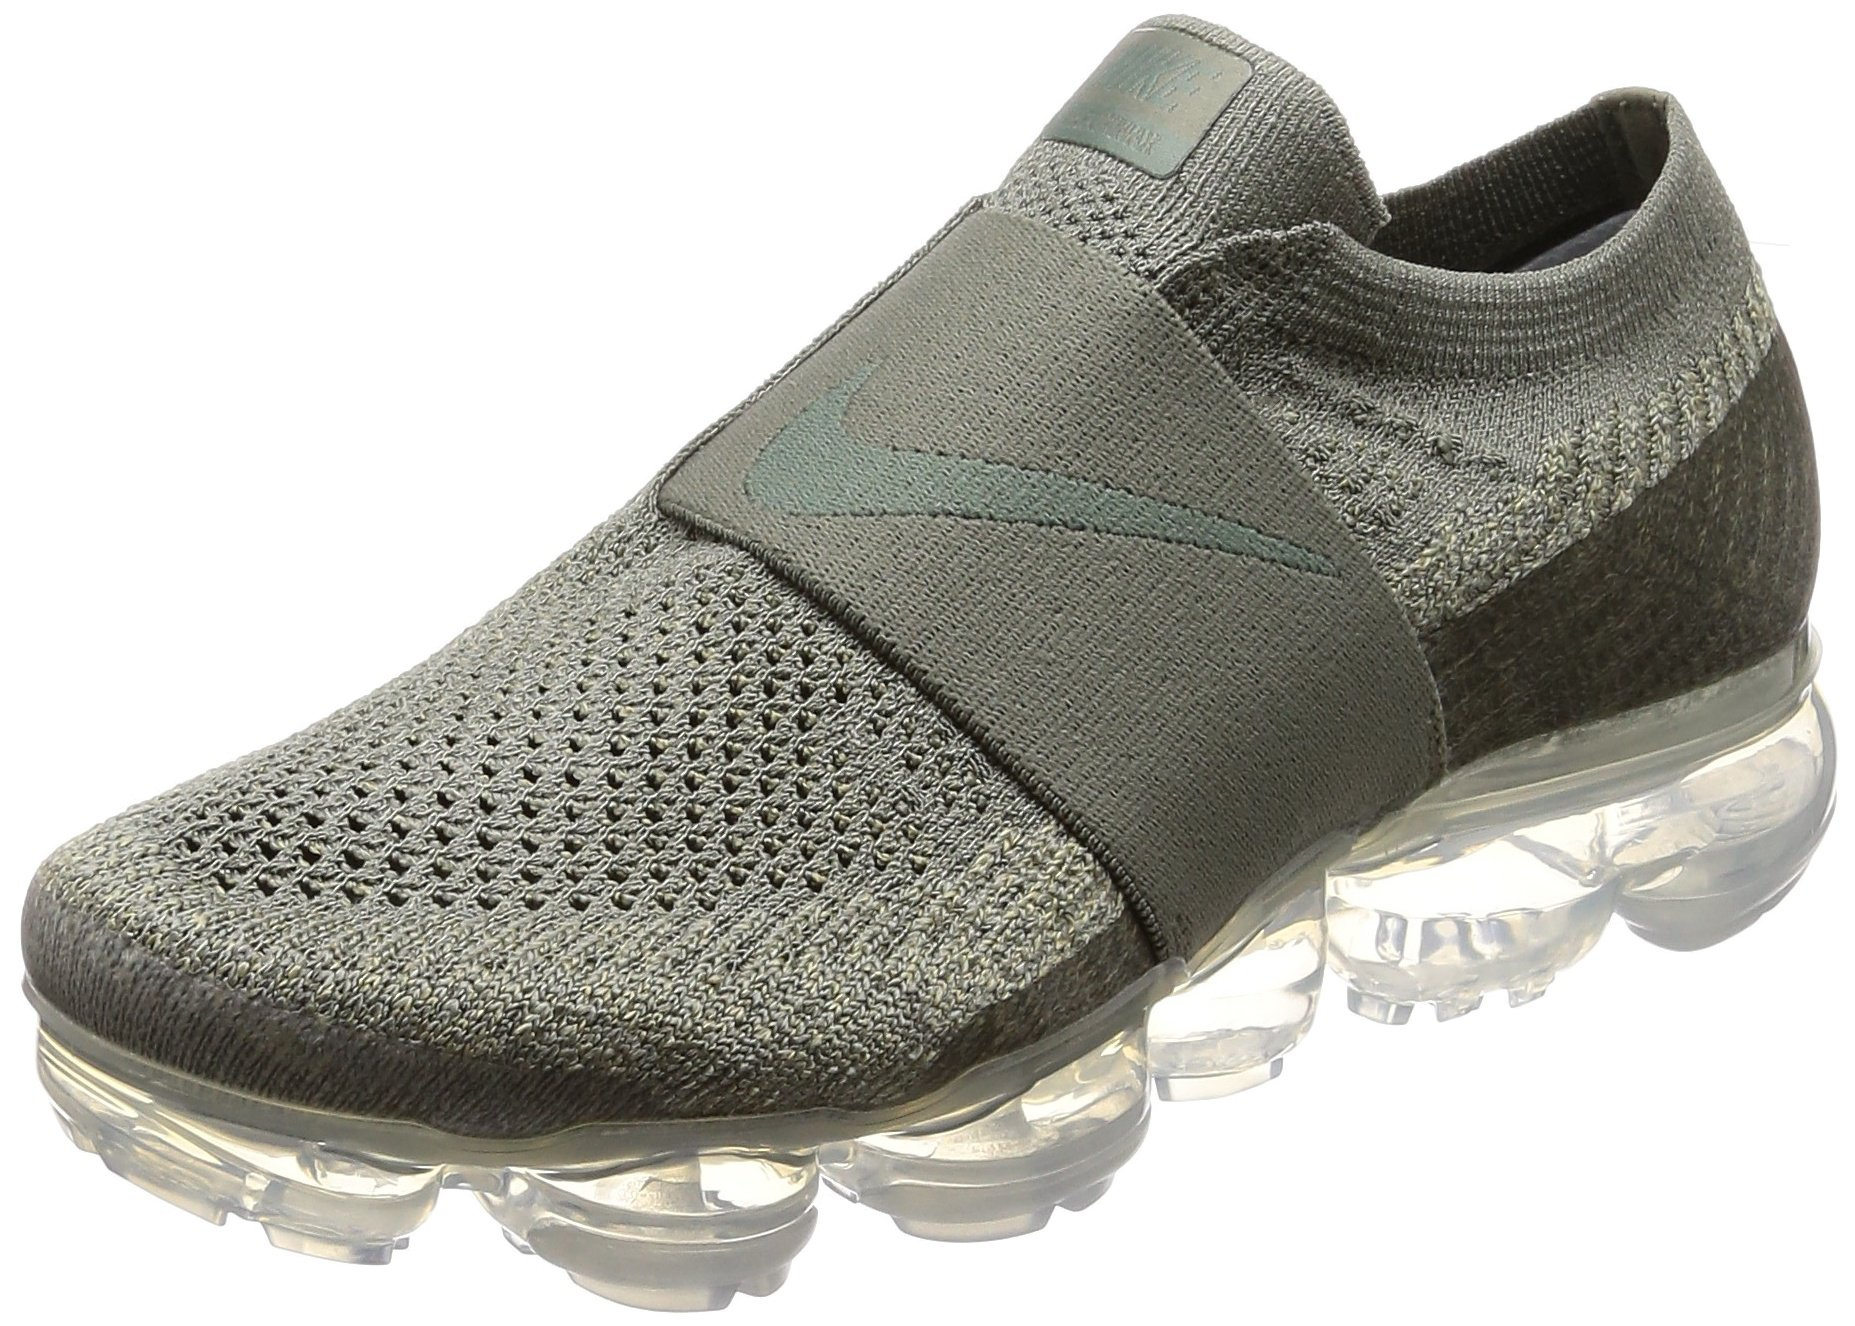 64a60141f8 Galleon - Nike Womens Air Vapormax Flyknit Moc Running Shoe (8.5)